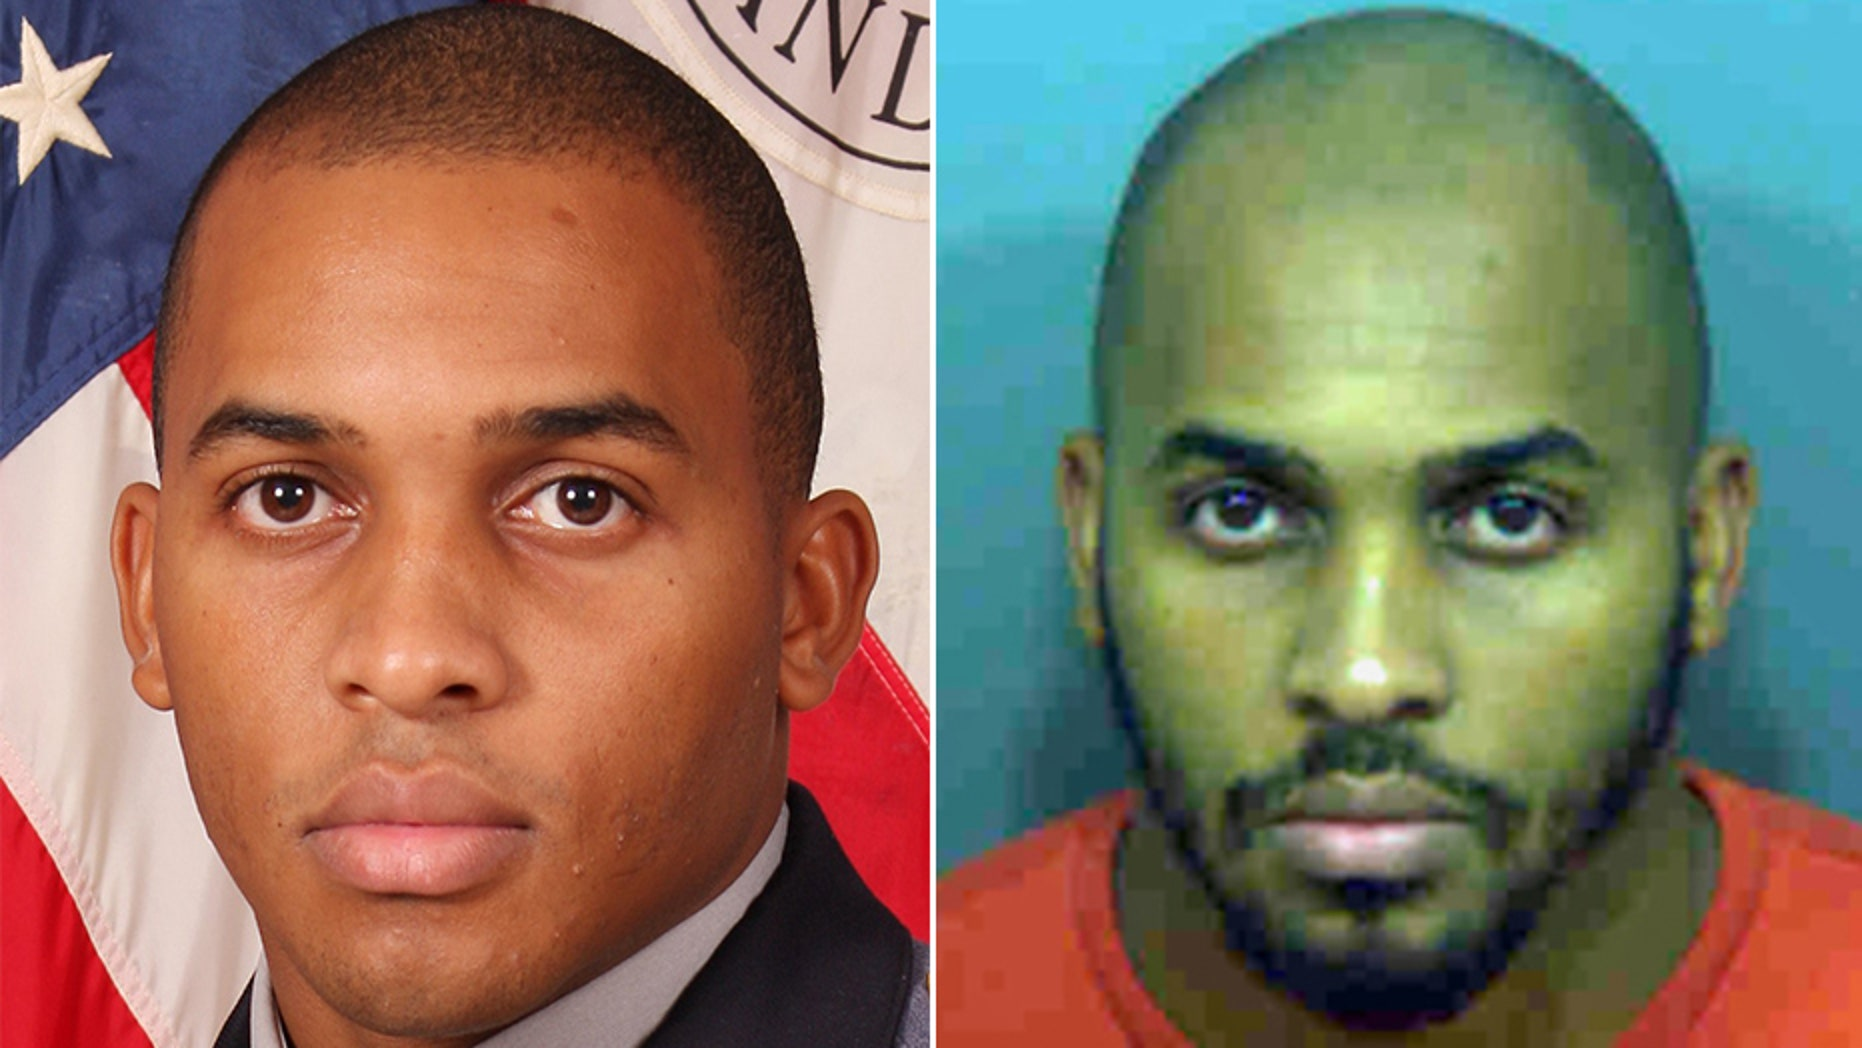 Ryan Macklin, a Prince George's County police officer, is accused of sexually assaulting a woman during a traffic stop last week.